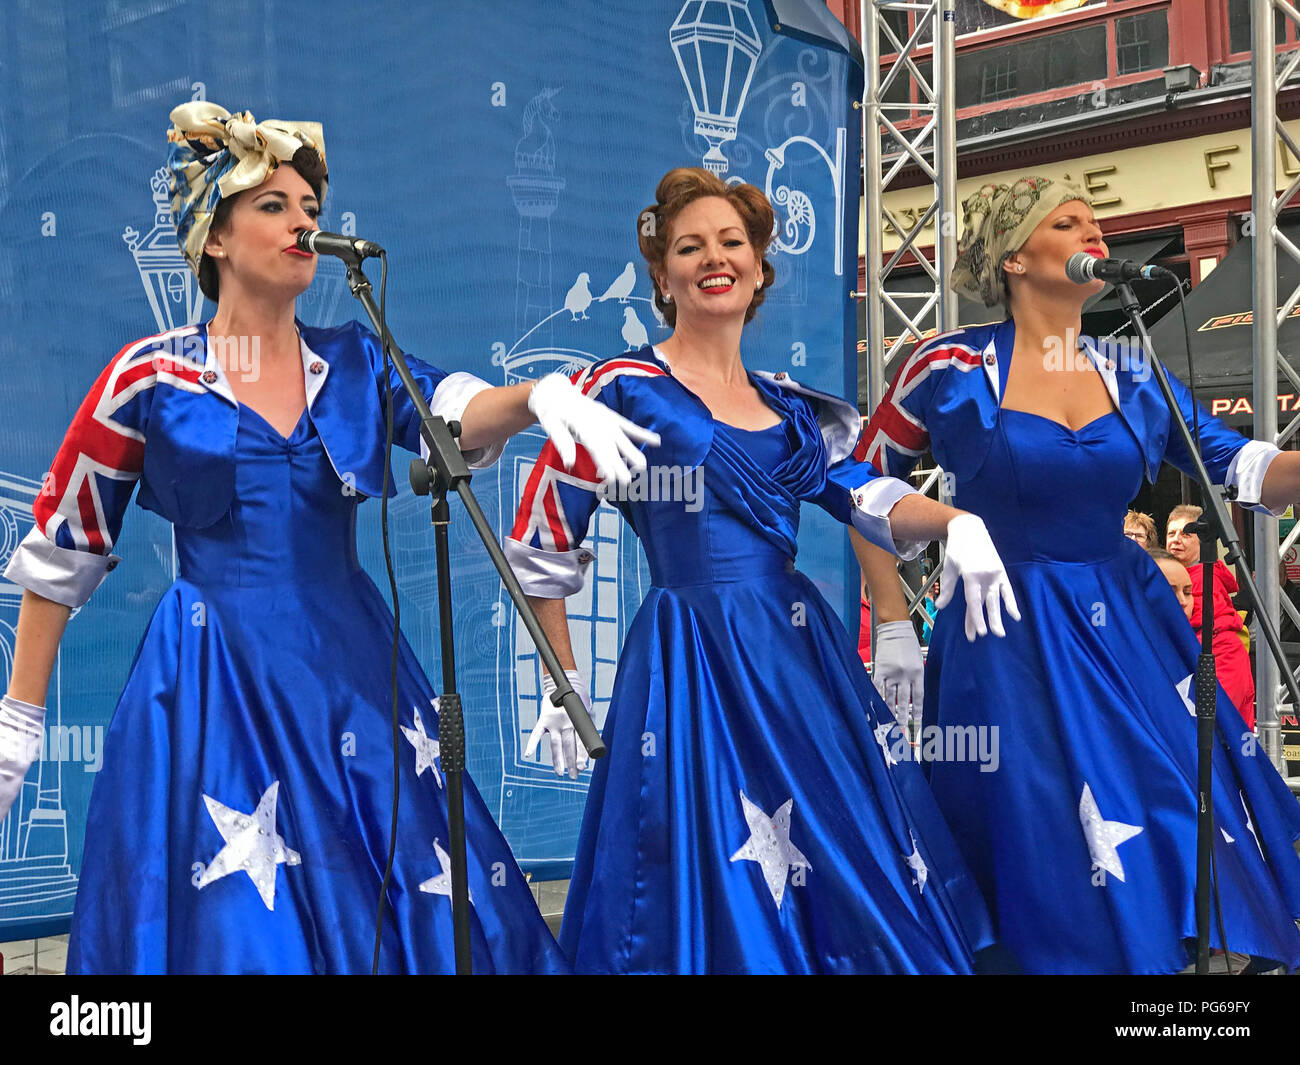 Girls From Oz - Fringe On The Royal Mile, High St, Edinburgh, Scotland, UK - Stock Image